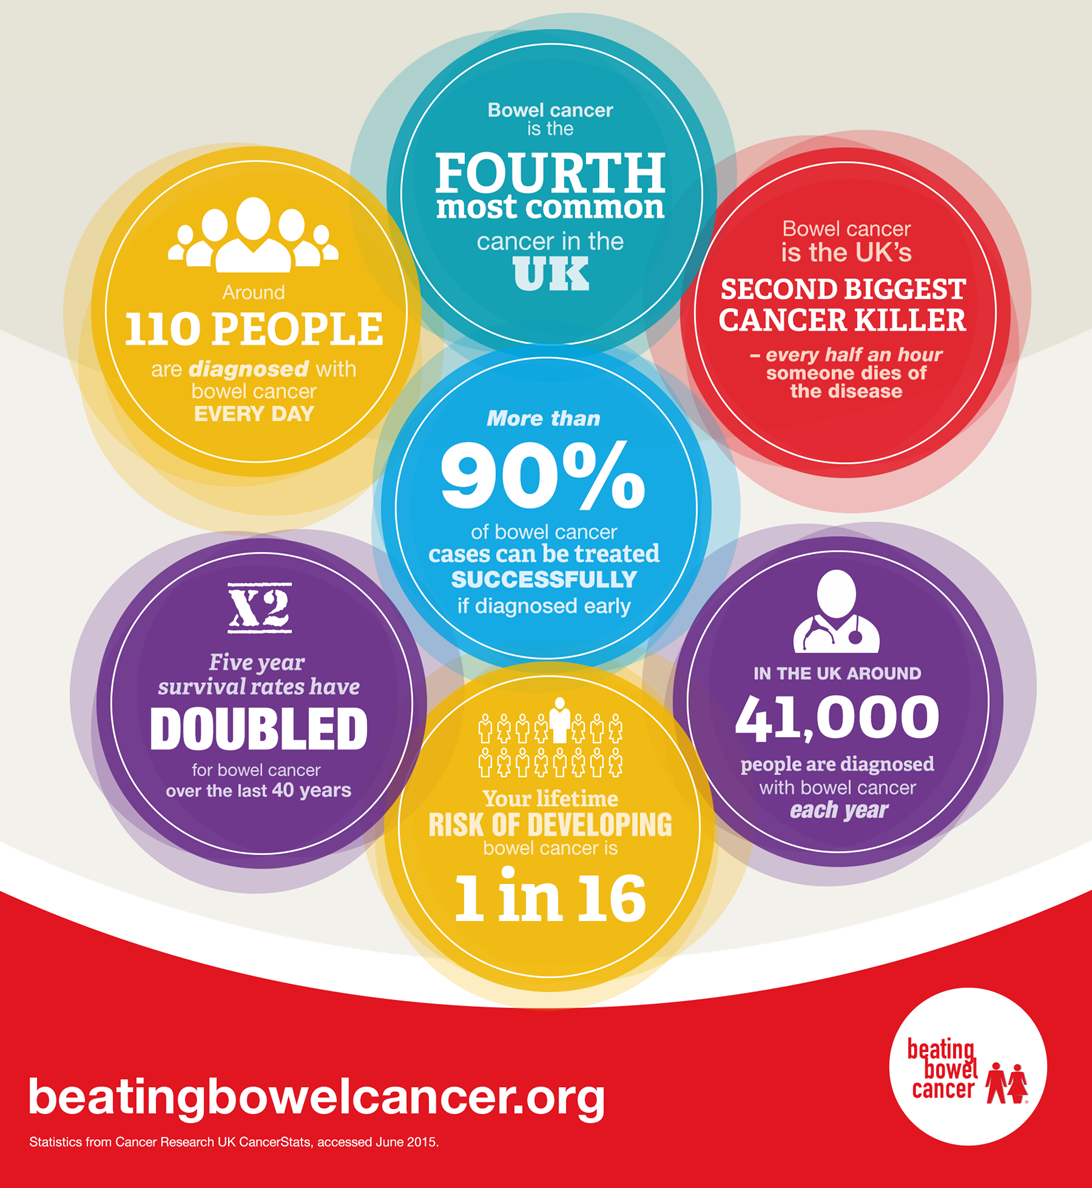 Today is the start of Bowel Cancer Awareness Month! Please help us encourage everyone to talk about this disease. https://t.co/uXlYRwcBPB